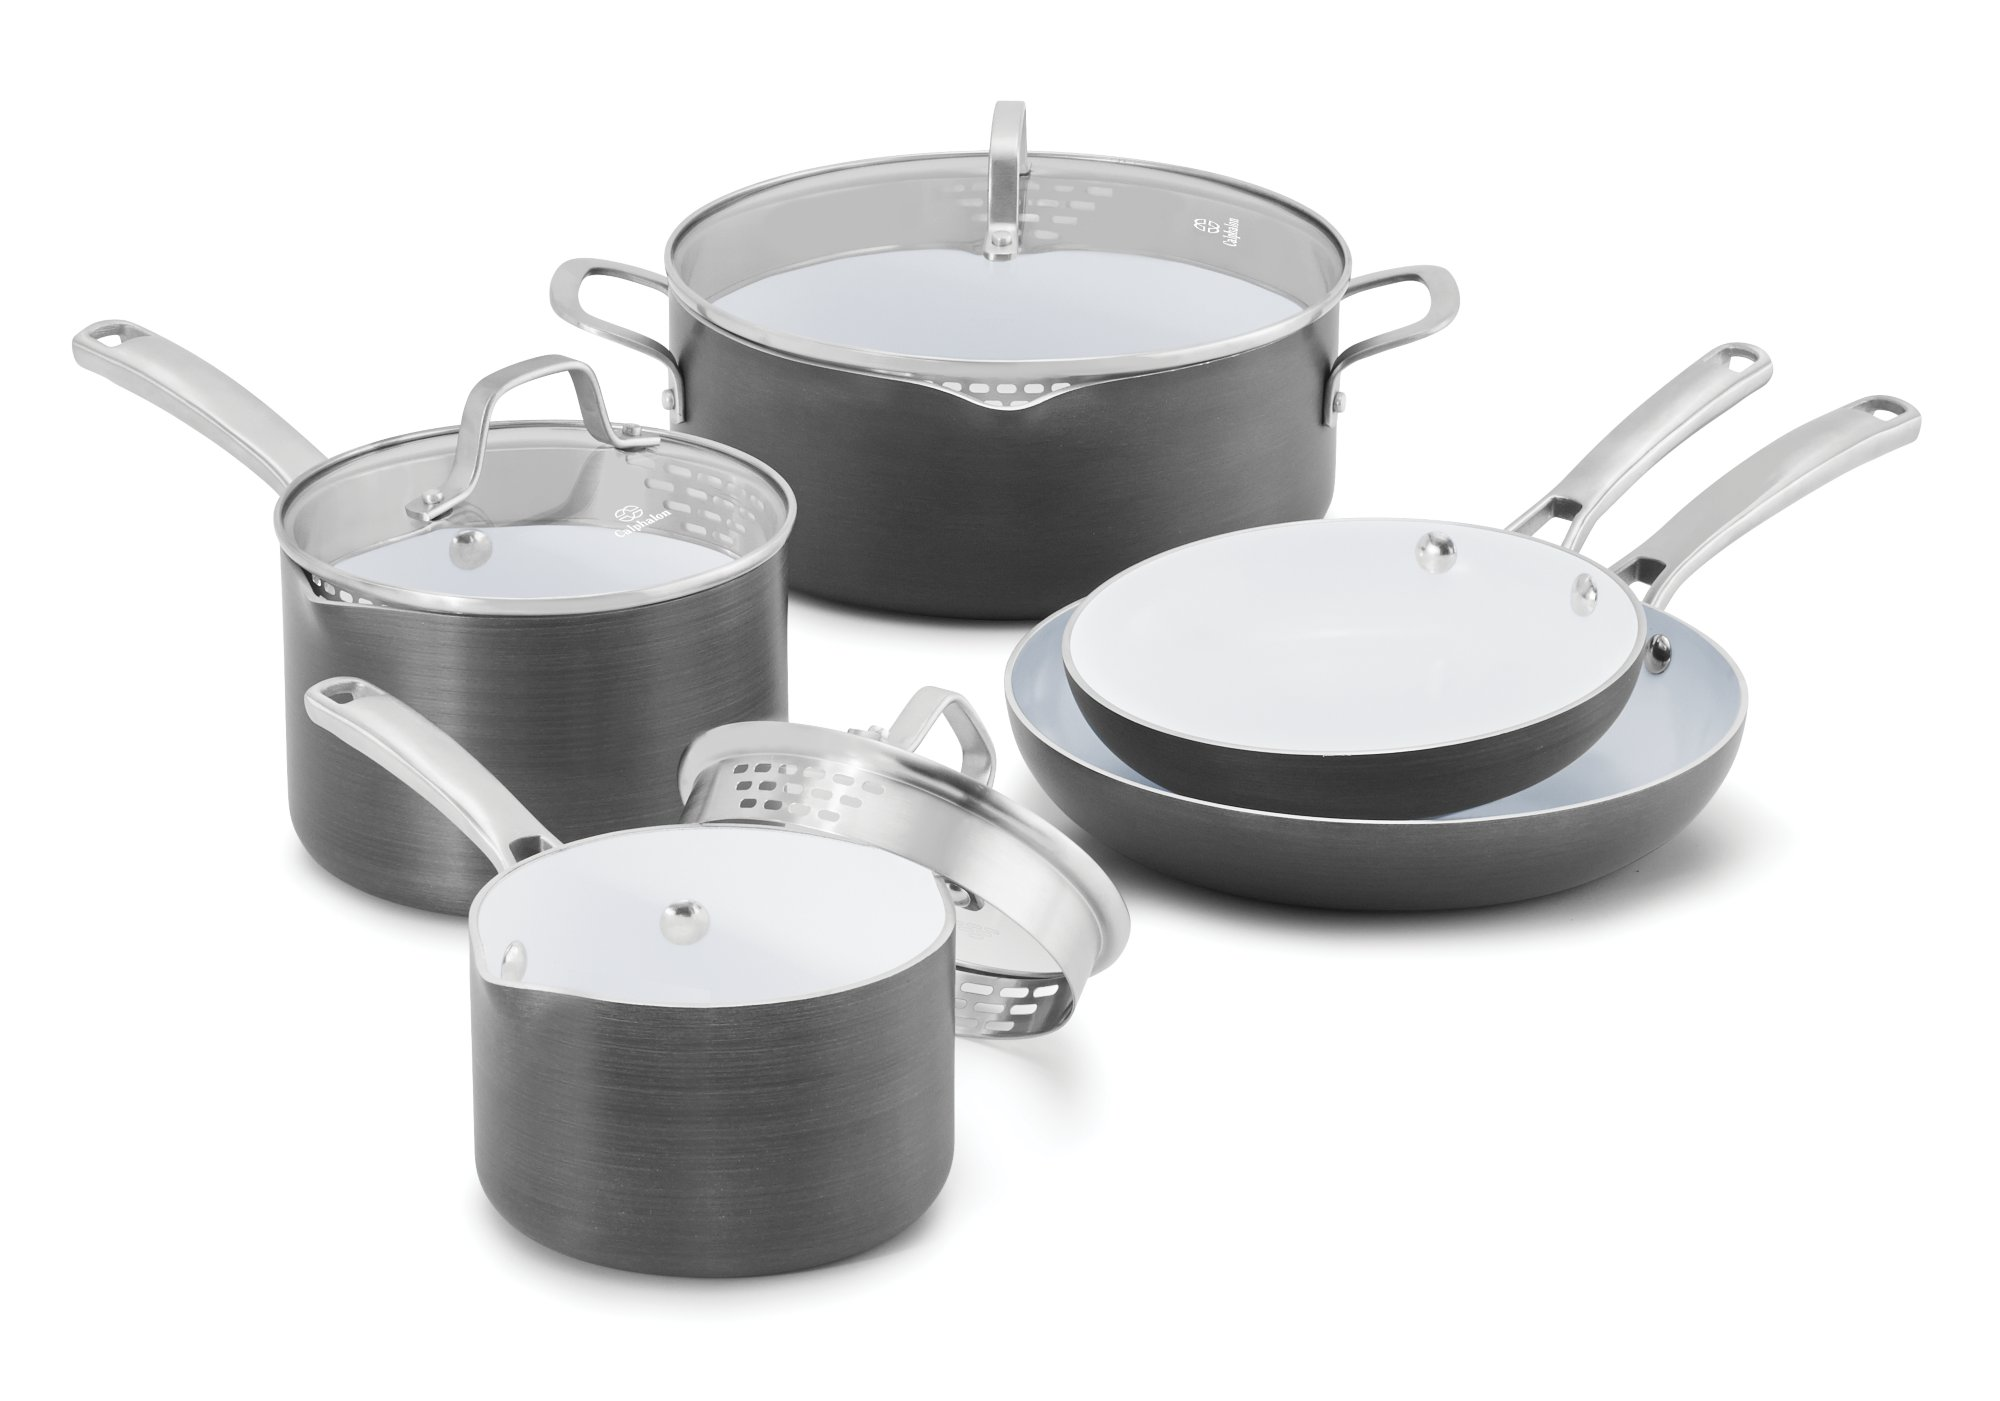 Calphalon Classic™ Ceramic Nonstick 8-pc. Cookware Set